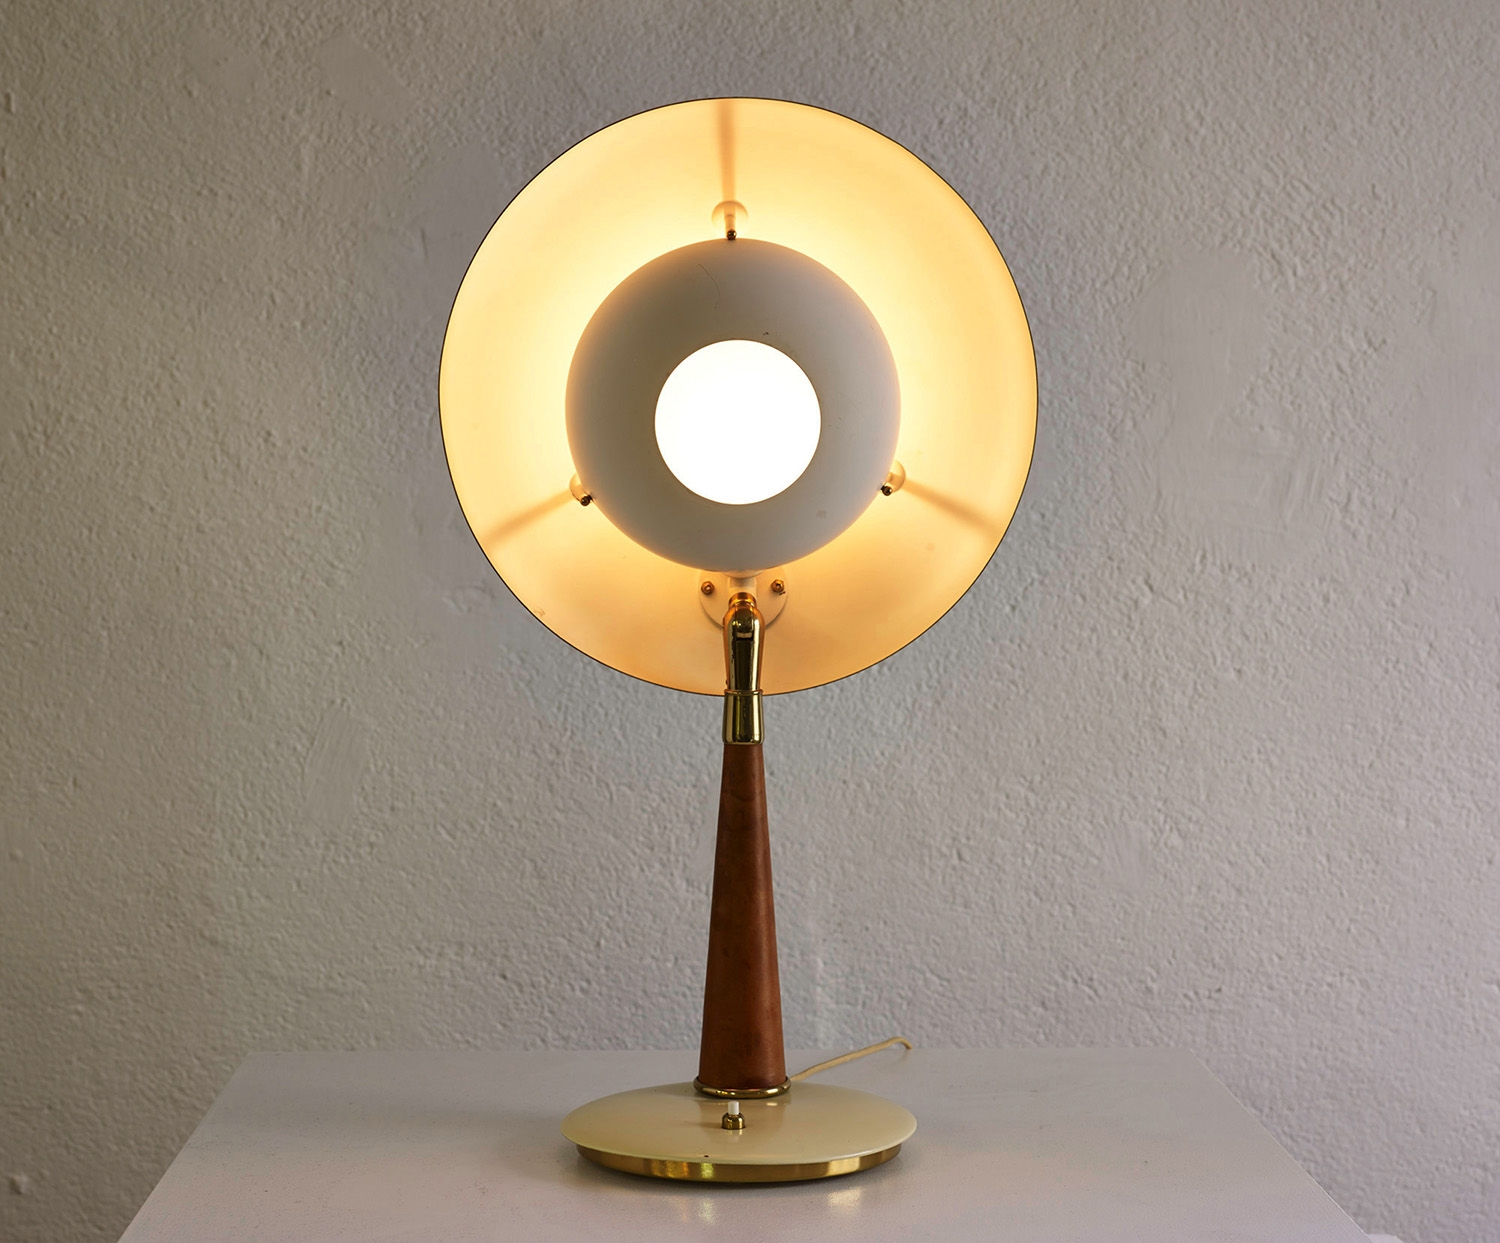 angelo-lelli-table-lamp-image-03